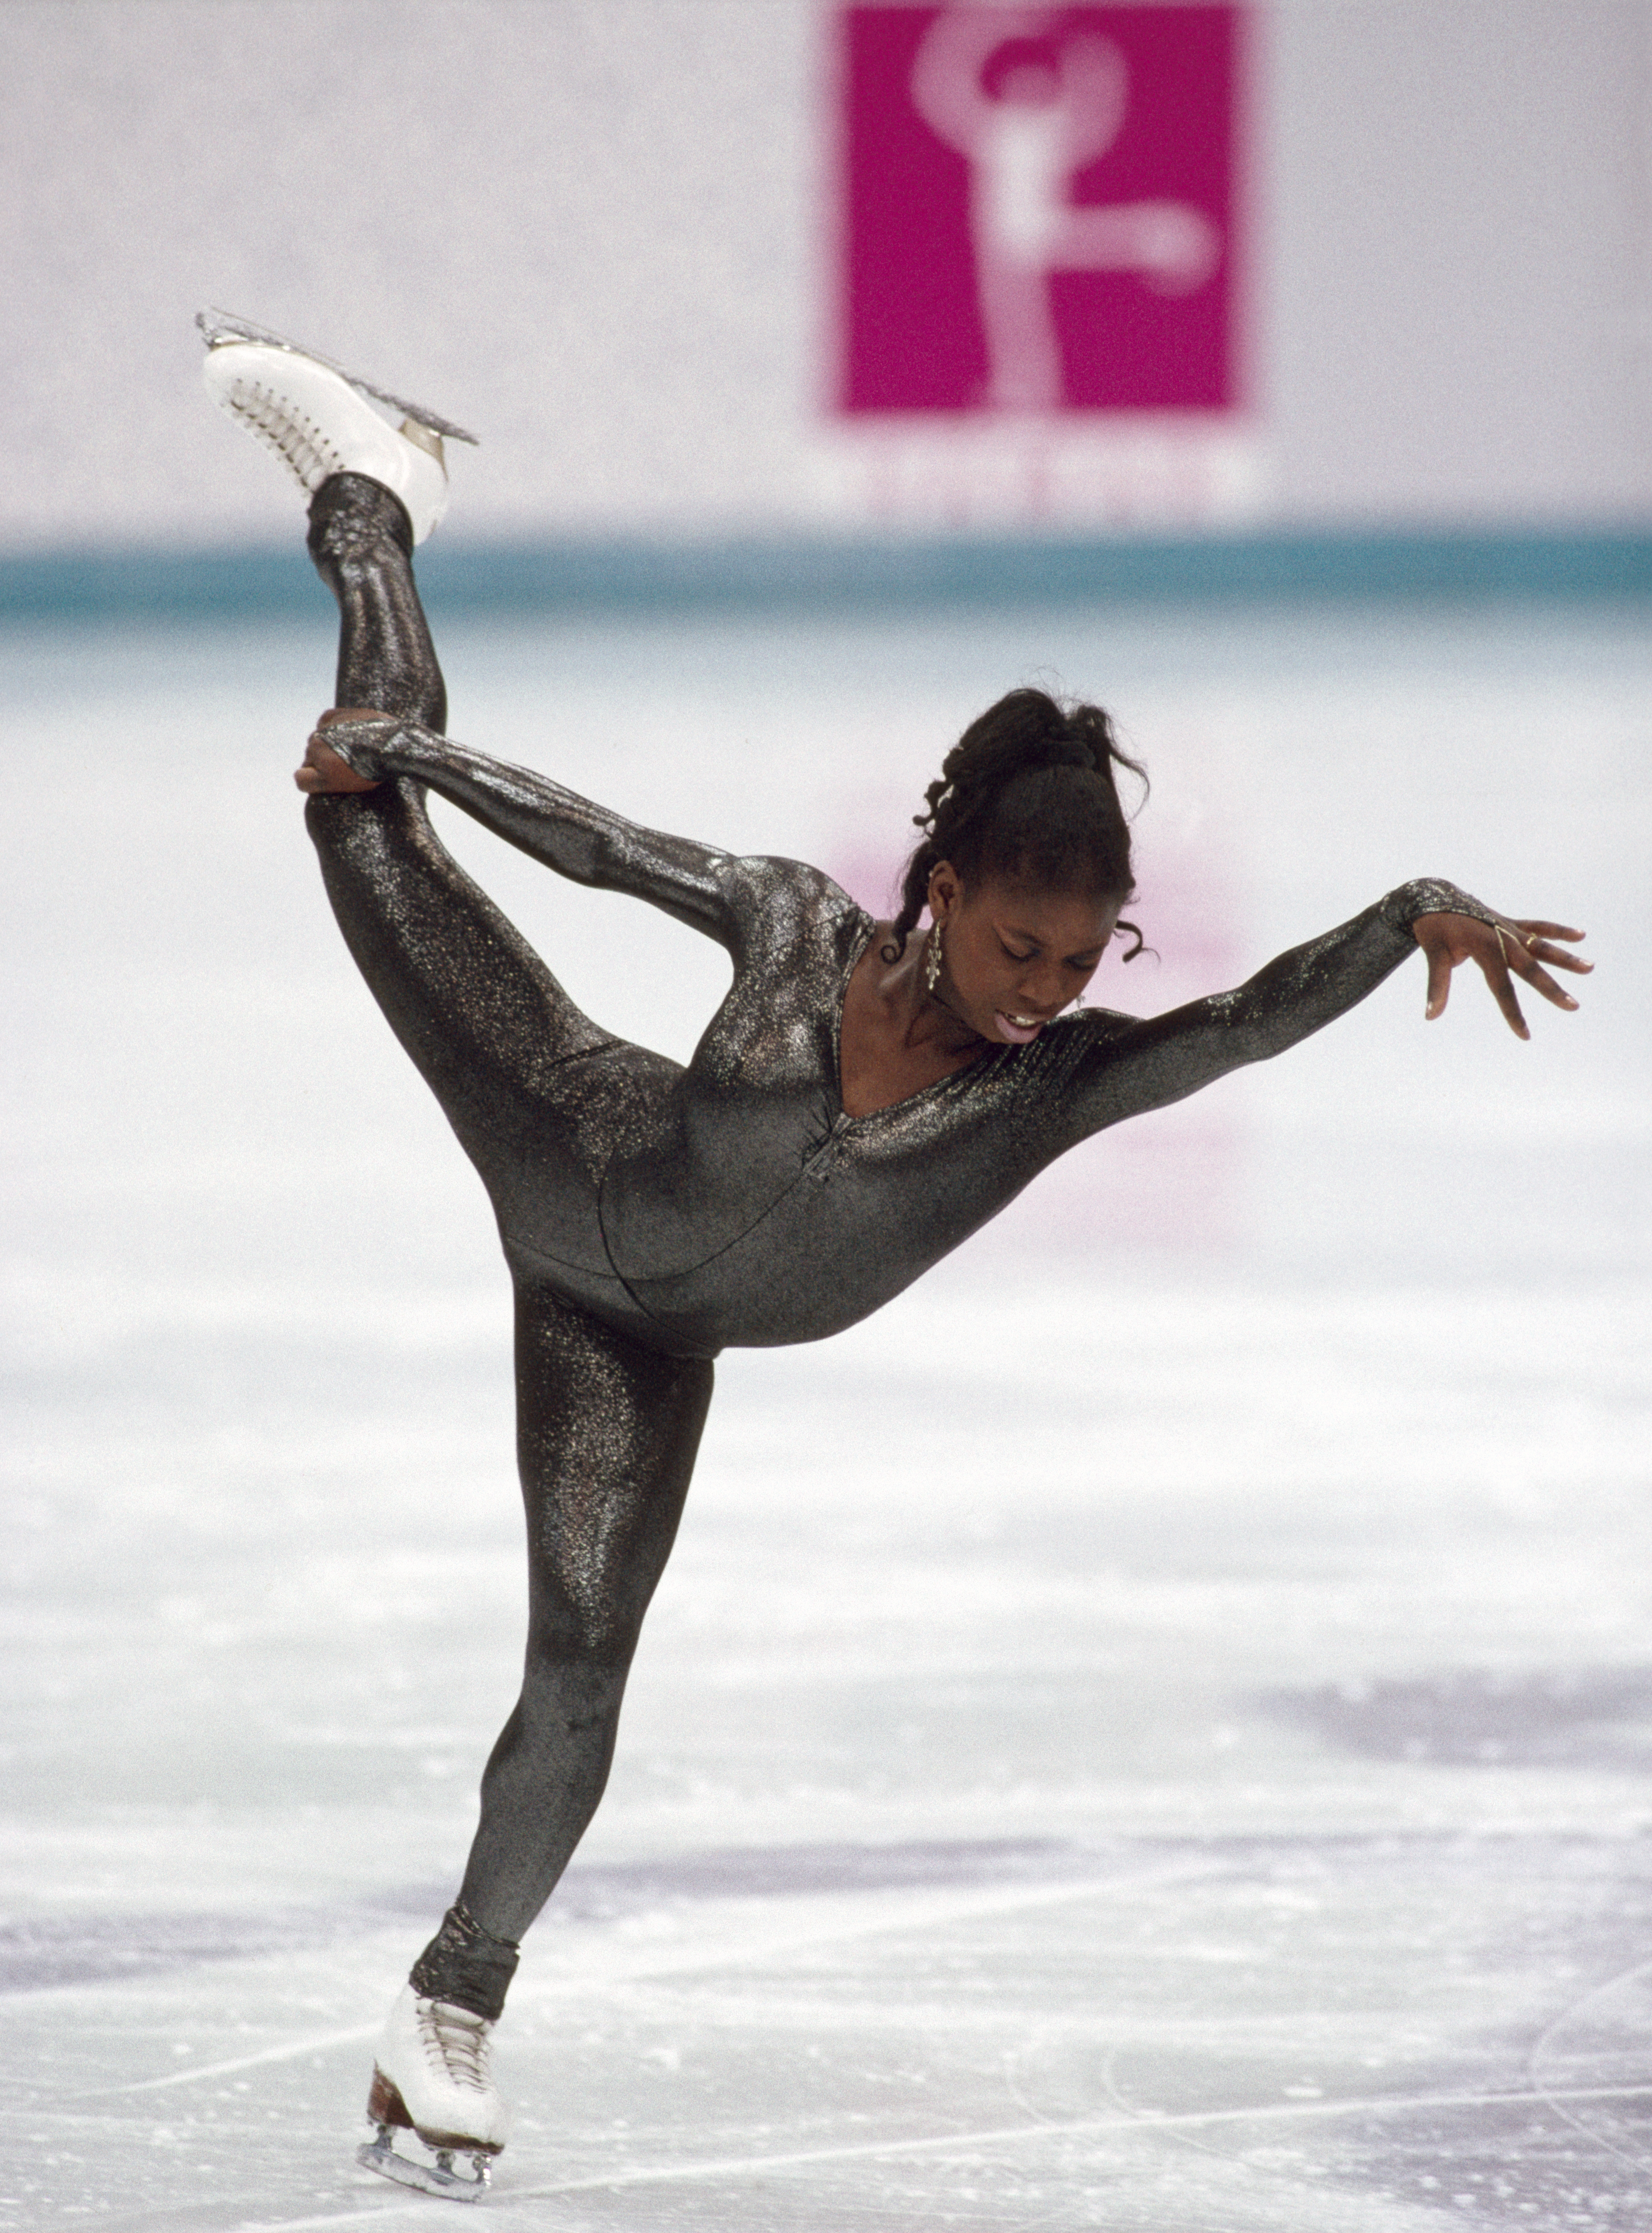 Surya Bonaly of France competing in the Ladies figure skating event during the Winter Olympic Games in Lillehammer, Norway, circa February 1994. Bonaly placed fourth. (Photo by Eileen Langsley/Popperfoto/Getty Images)